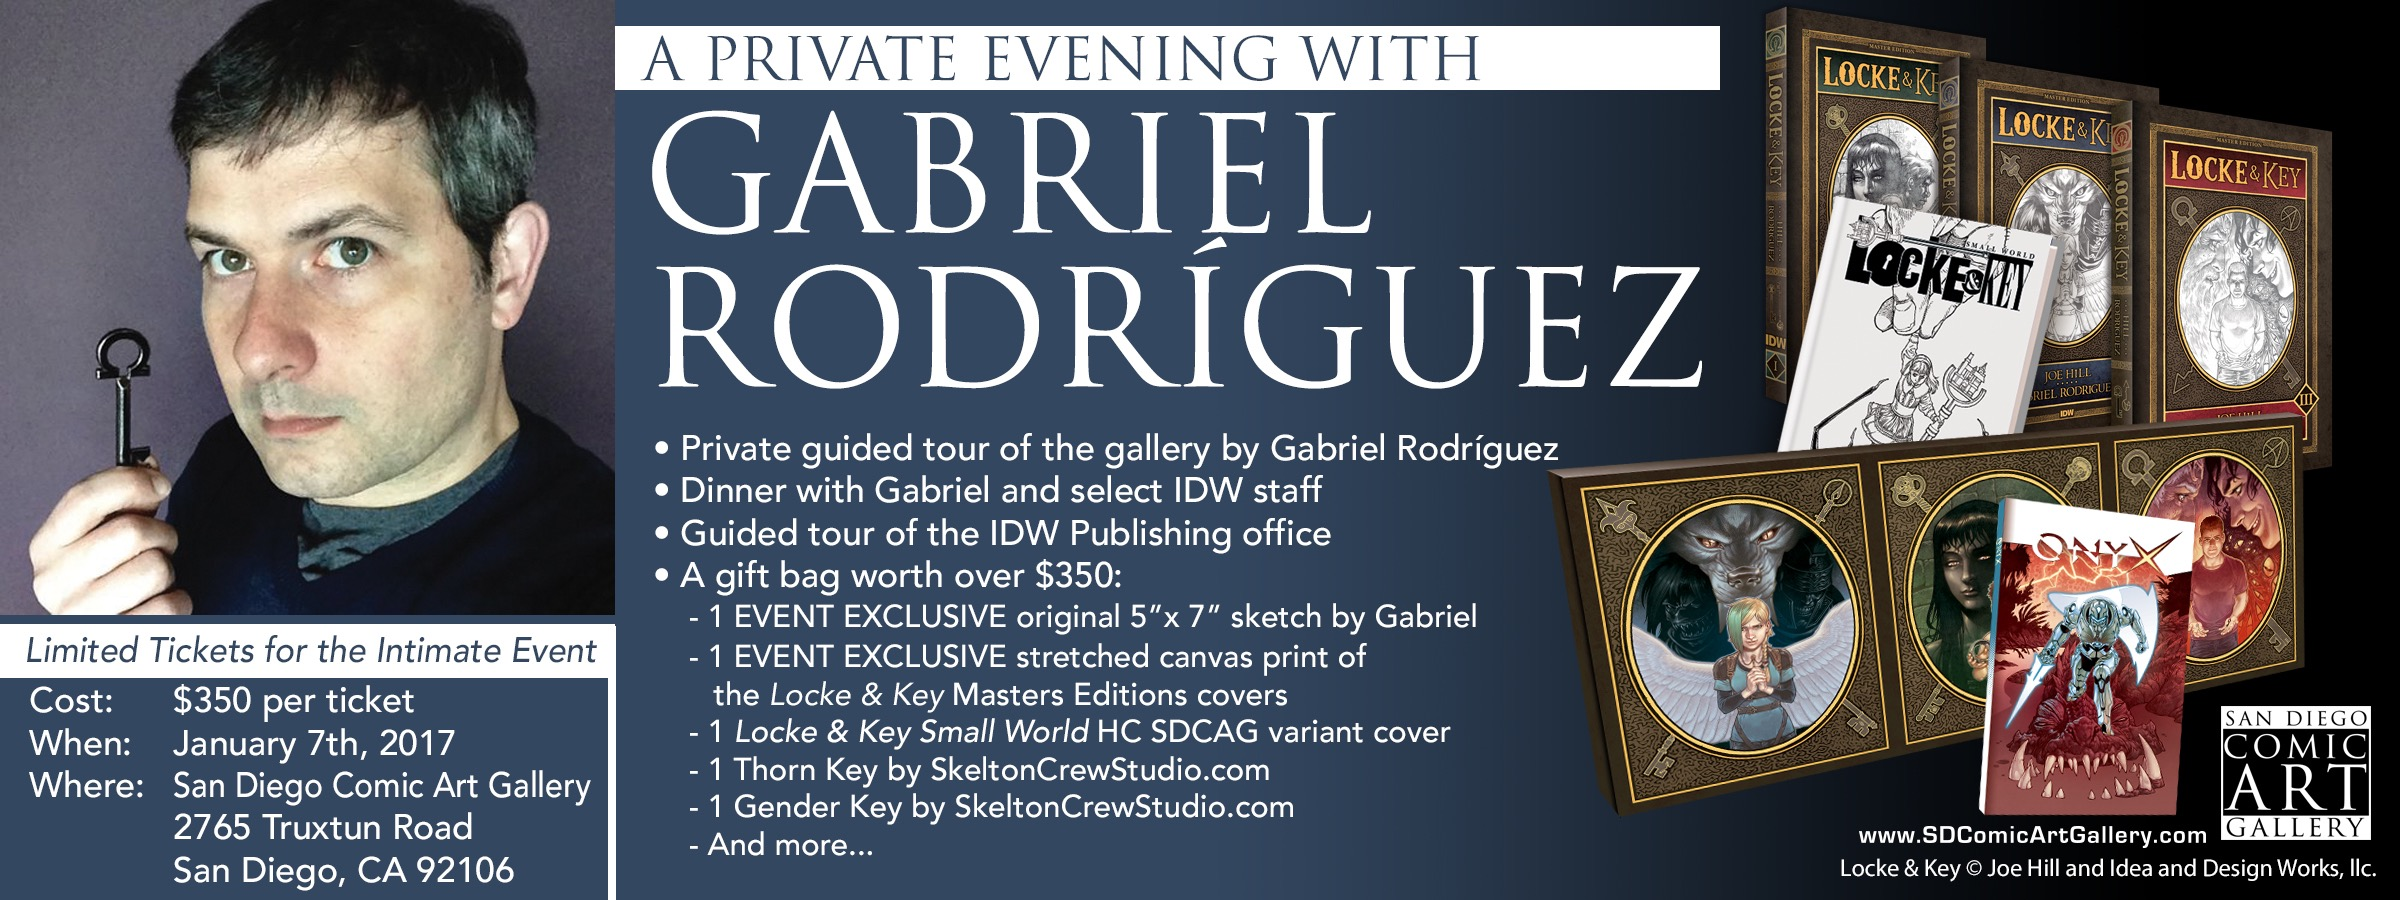 A Private Evening with Gabriel Rodriguez in January